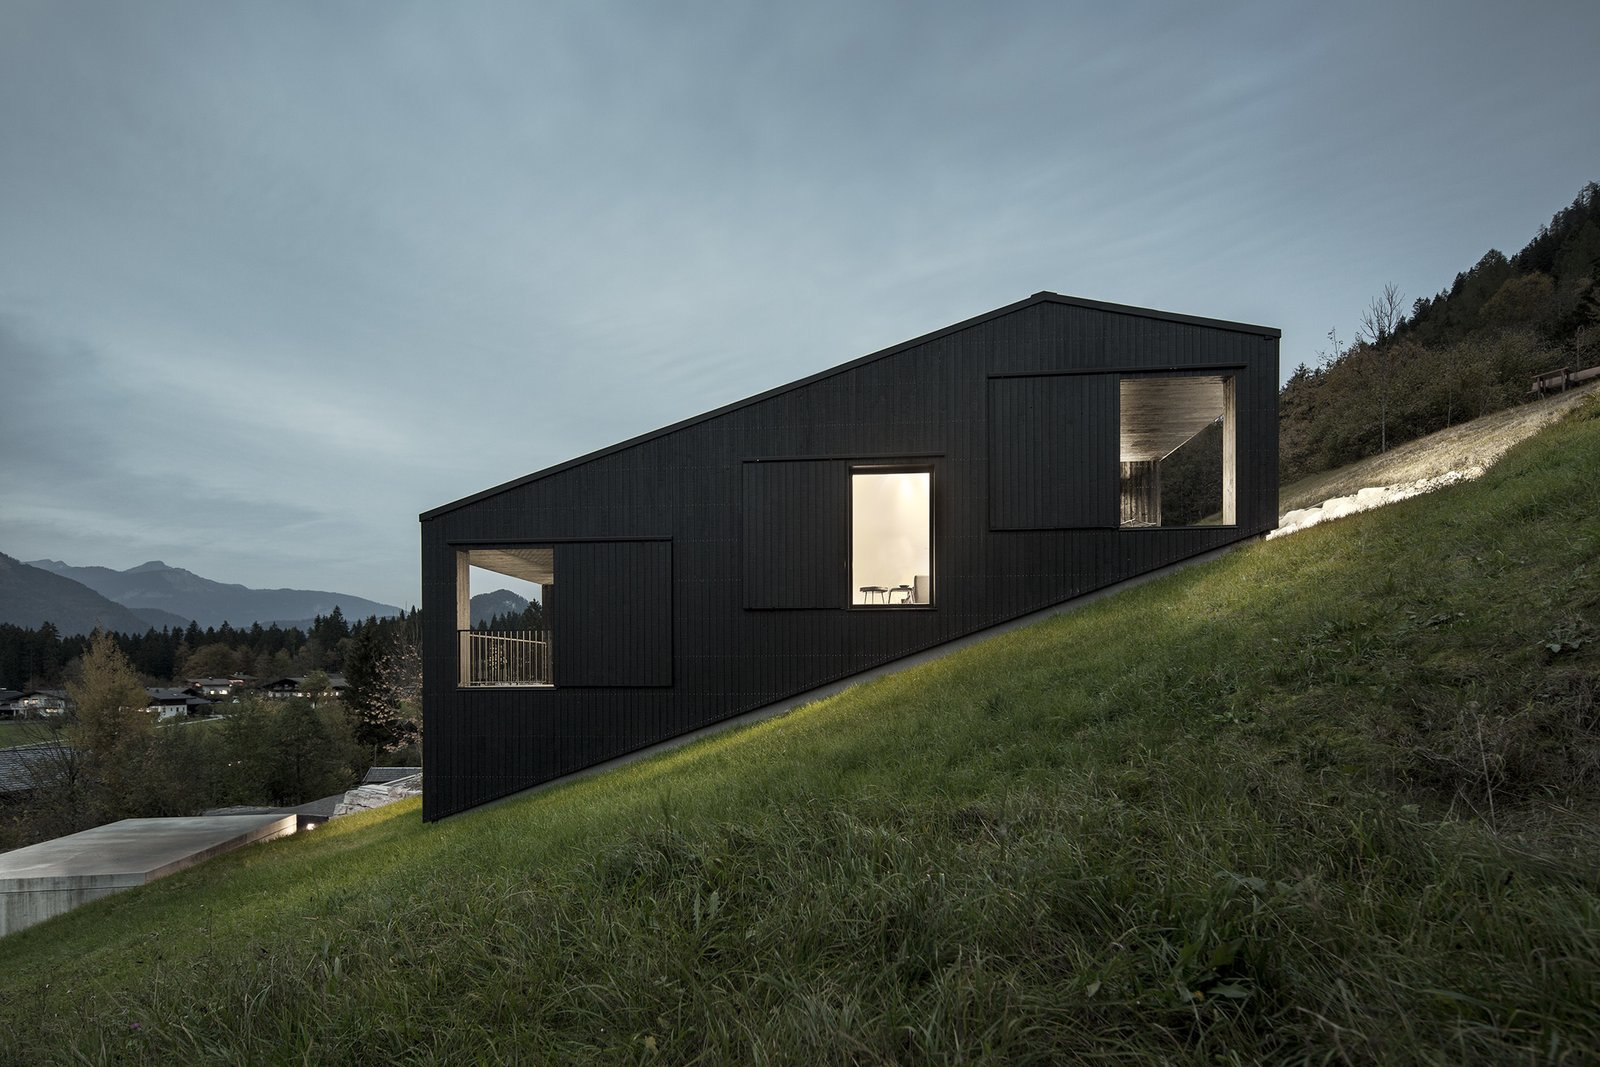 Exterior, Cabin Building Type, Wood Siding Material, and House Building Type Context and Contrast in the Alps | Austria  An Austrian vacation home's design references its mountainside setting and expansive views across the valley. By Tom Lechner / LP Architektur  Photos from Cabin Love